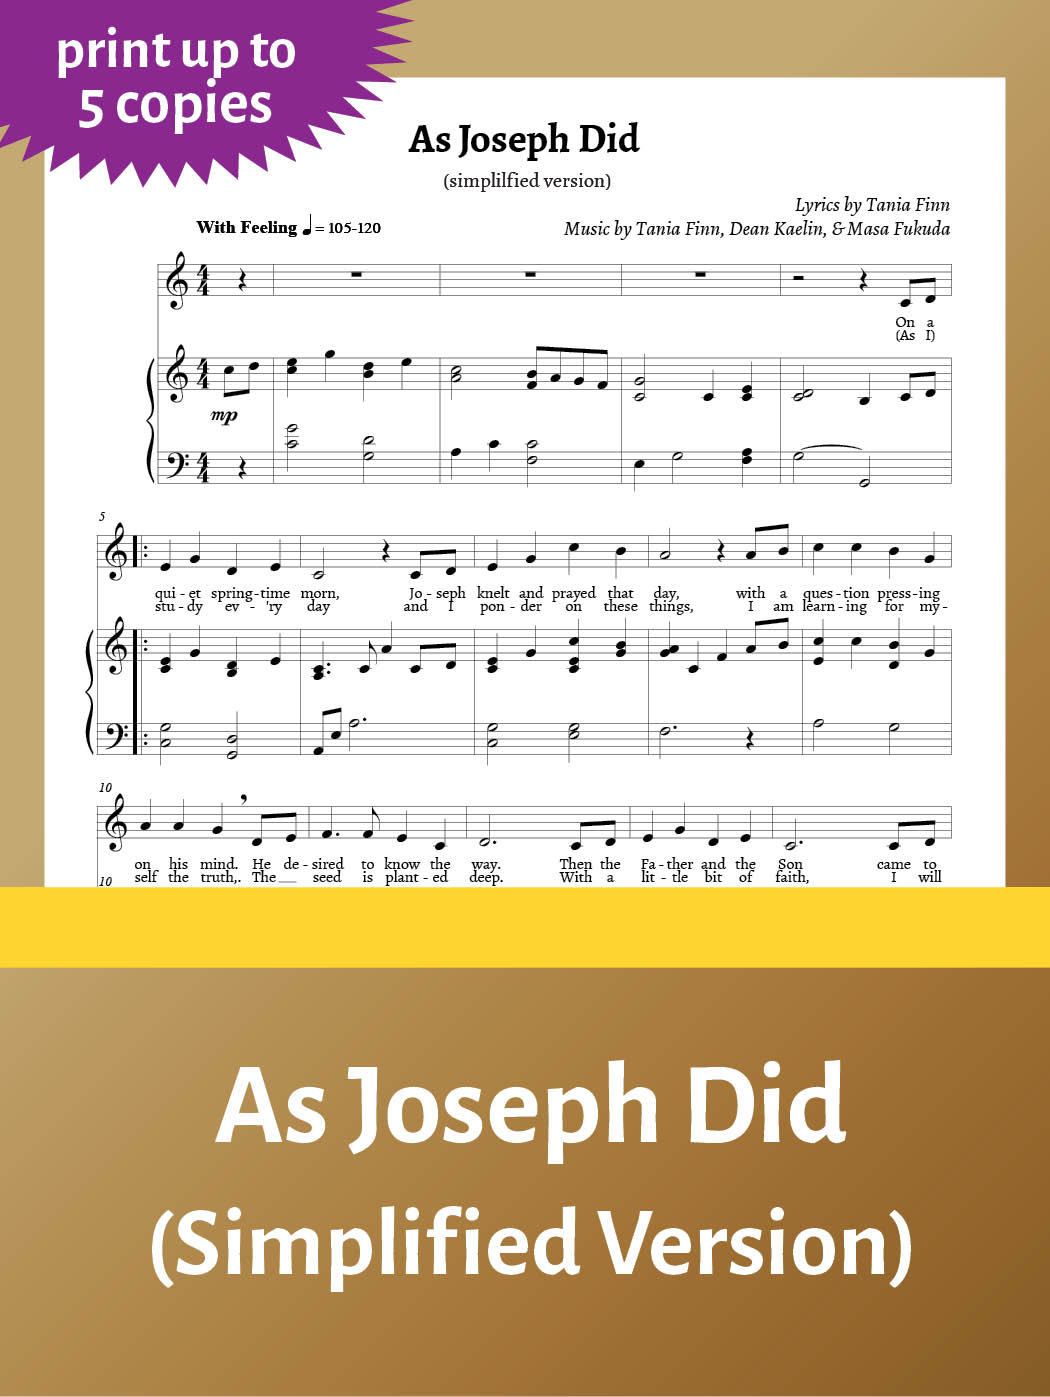 As Joseph Did – Sheet Music – simplified – up to 5 copies